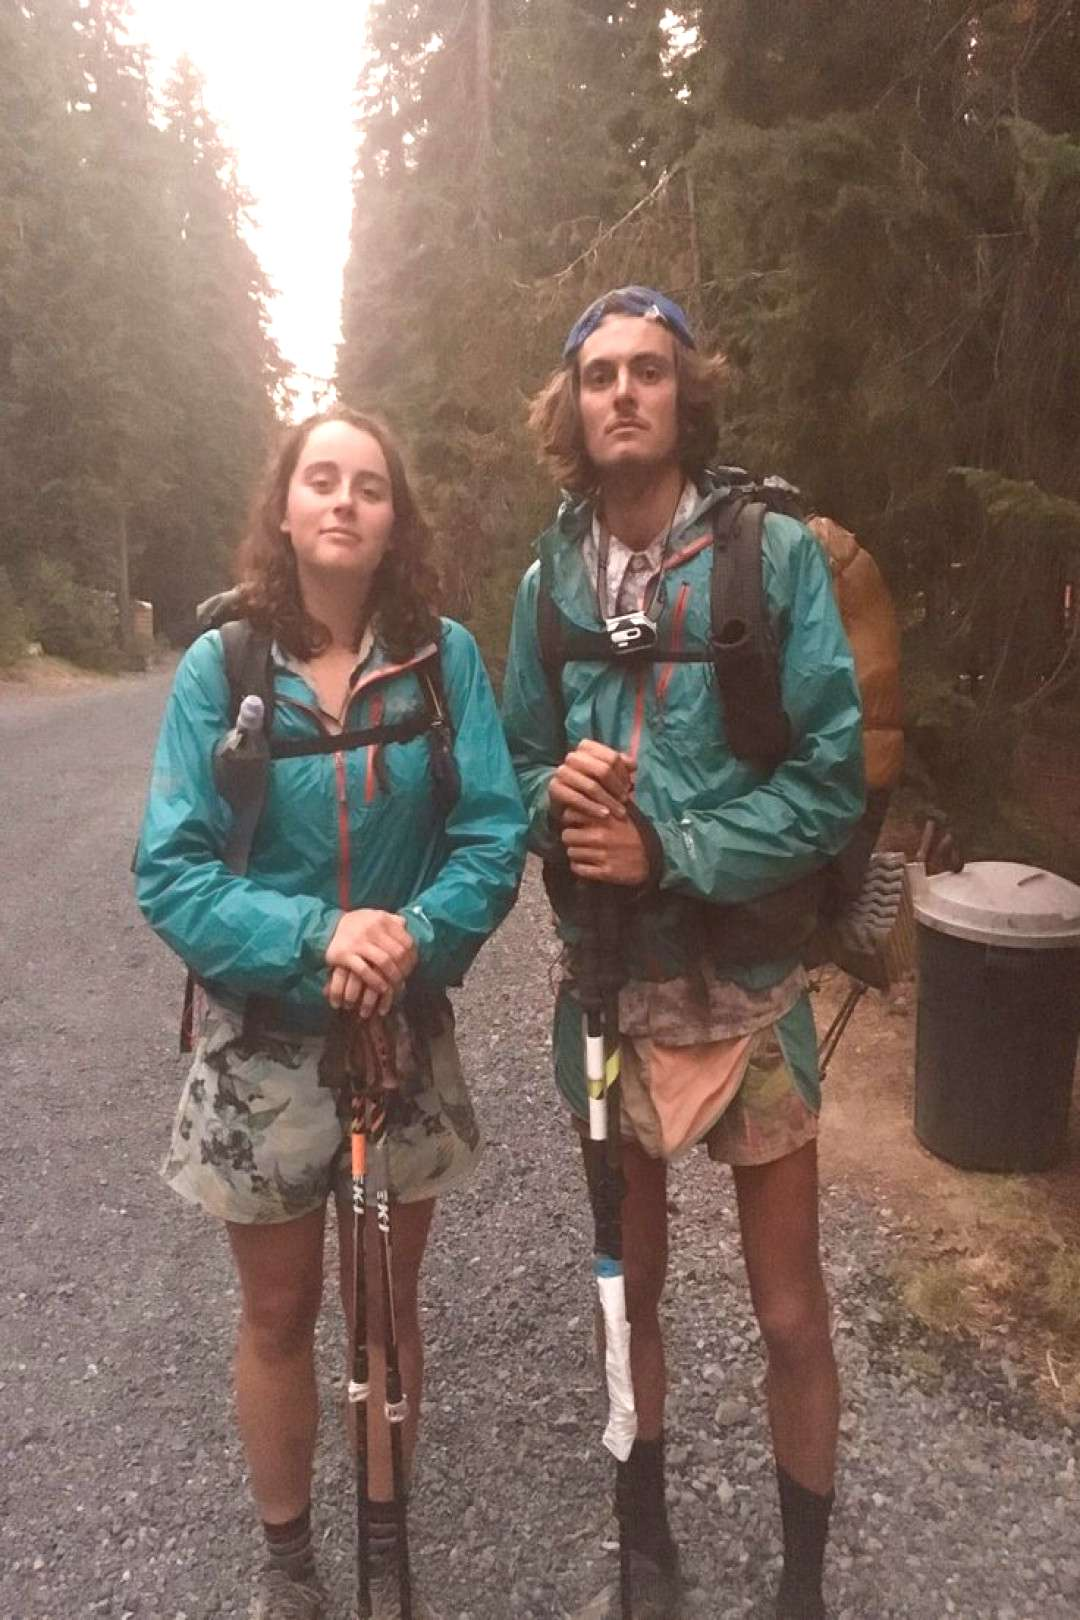 Before hiking 1,833.3 miles of the Pacific Crest Trail, I was by no means an avid backpacker. I had